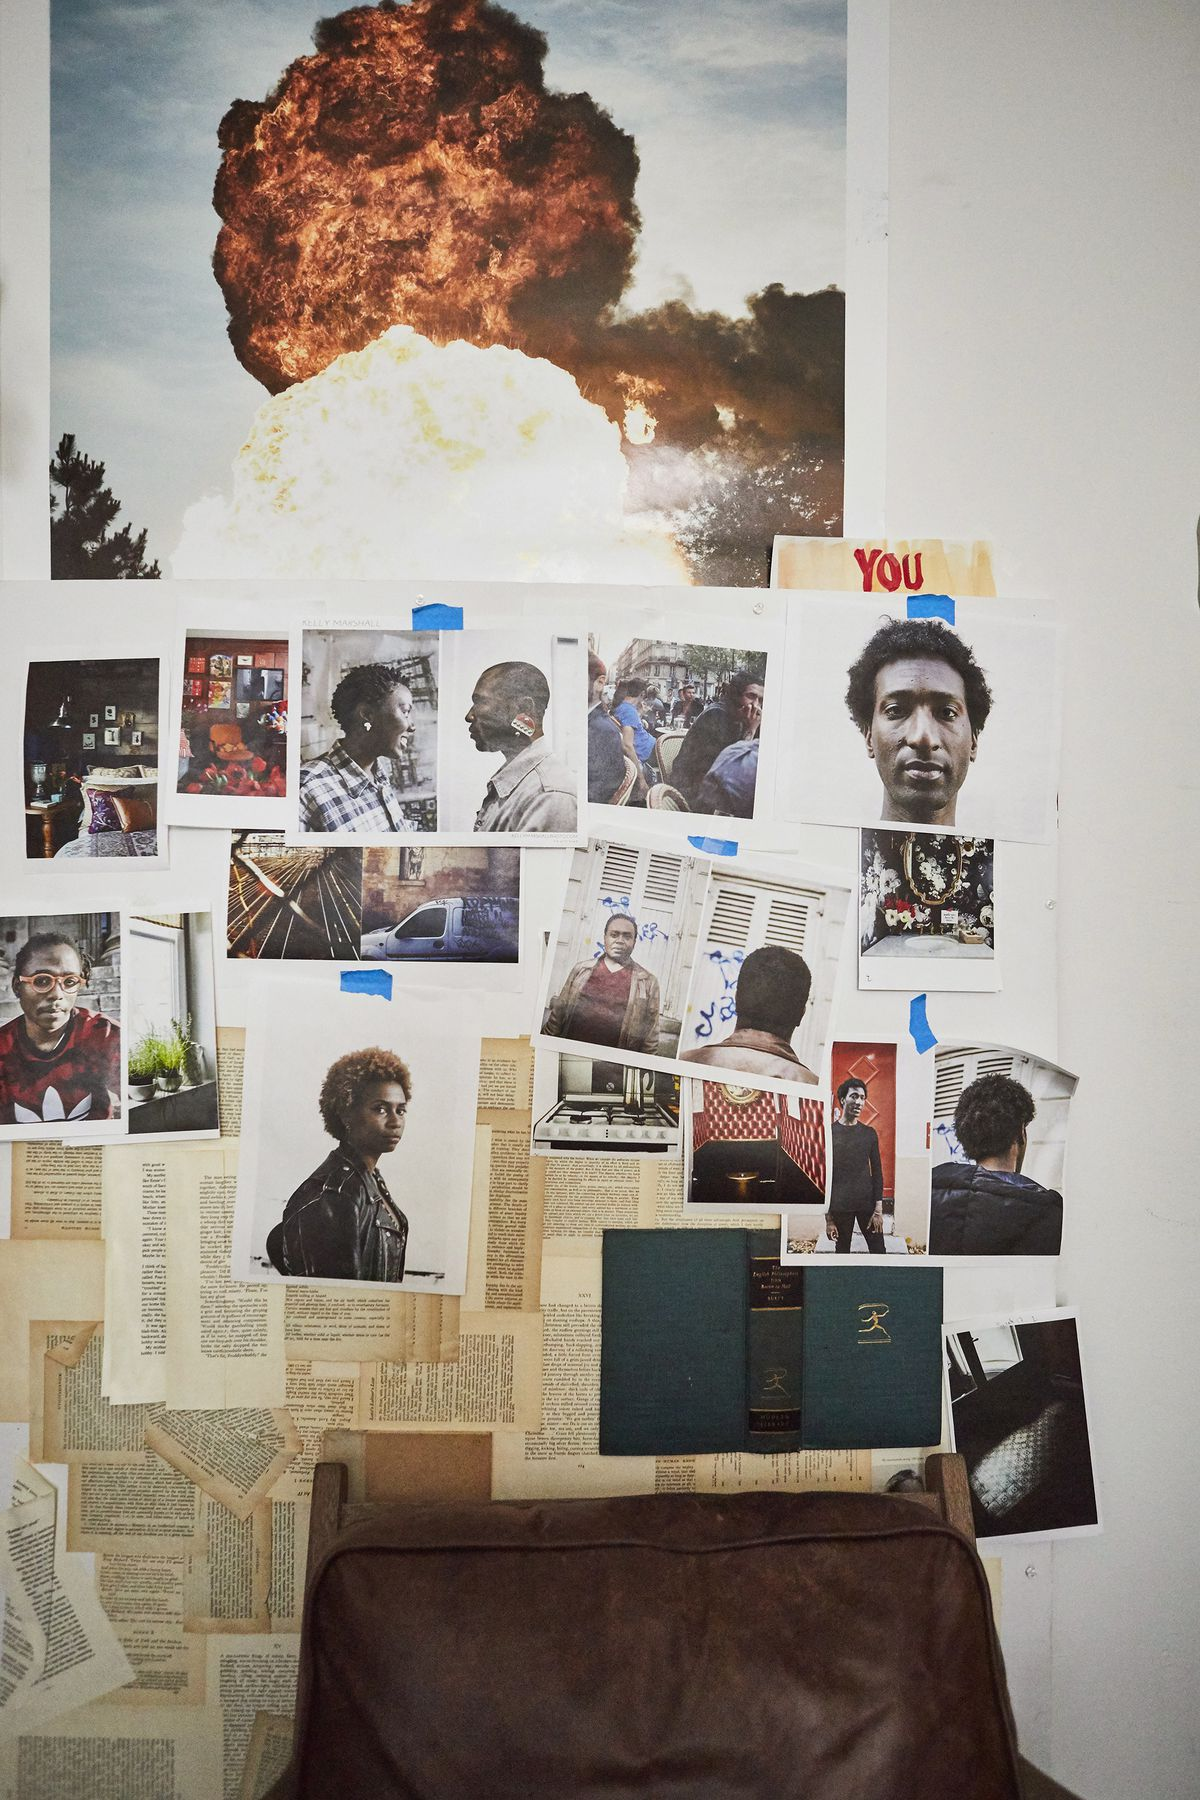 A wall shows a number of photographs of finished projects and works-in-progress.